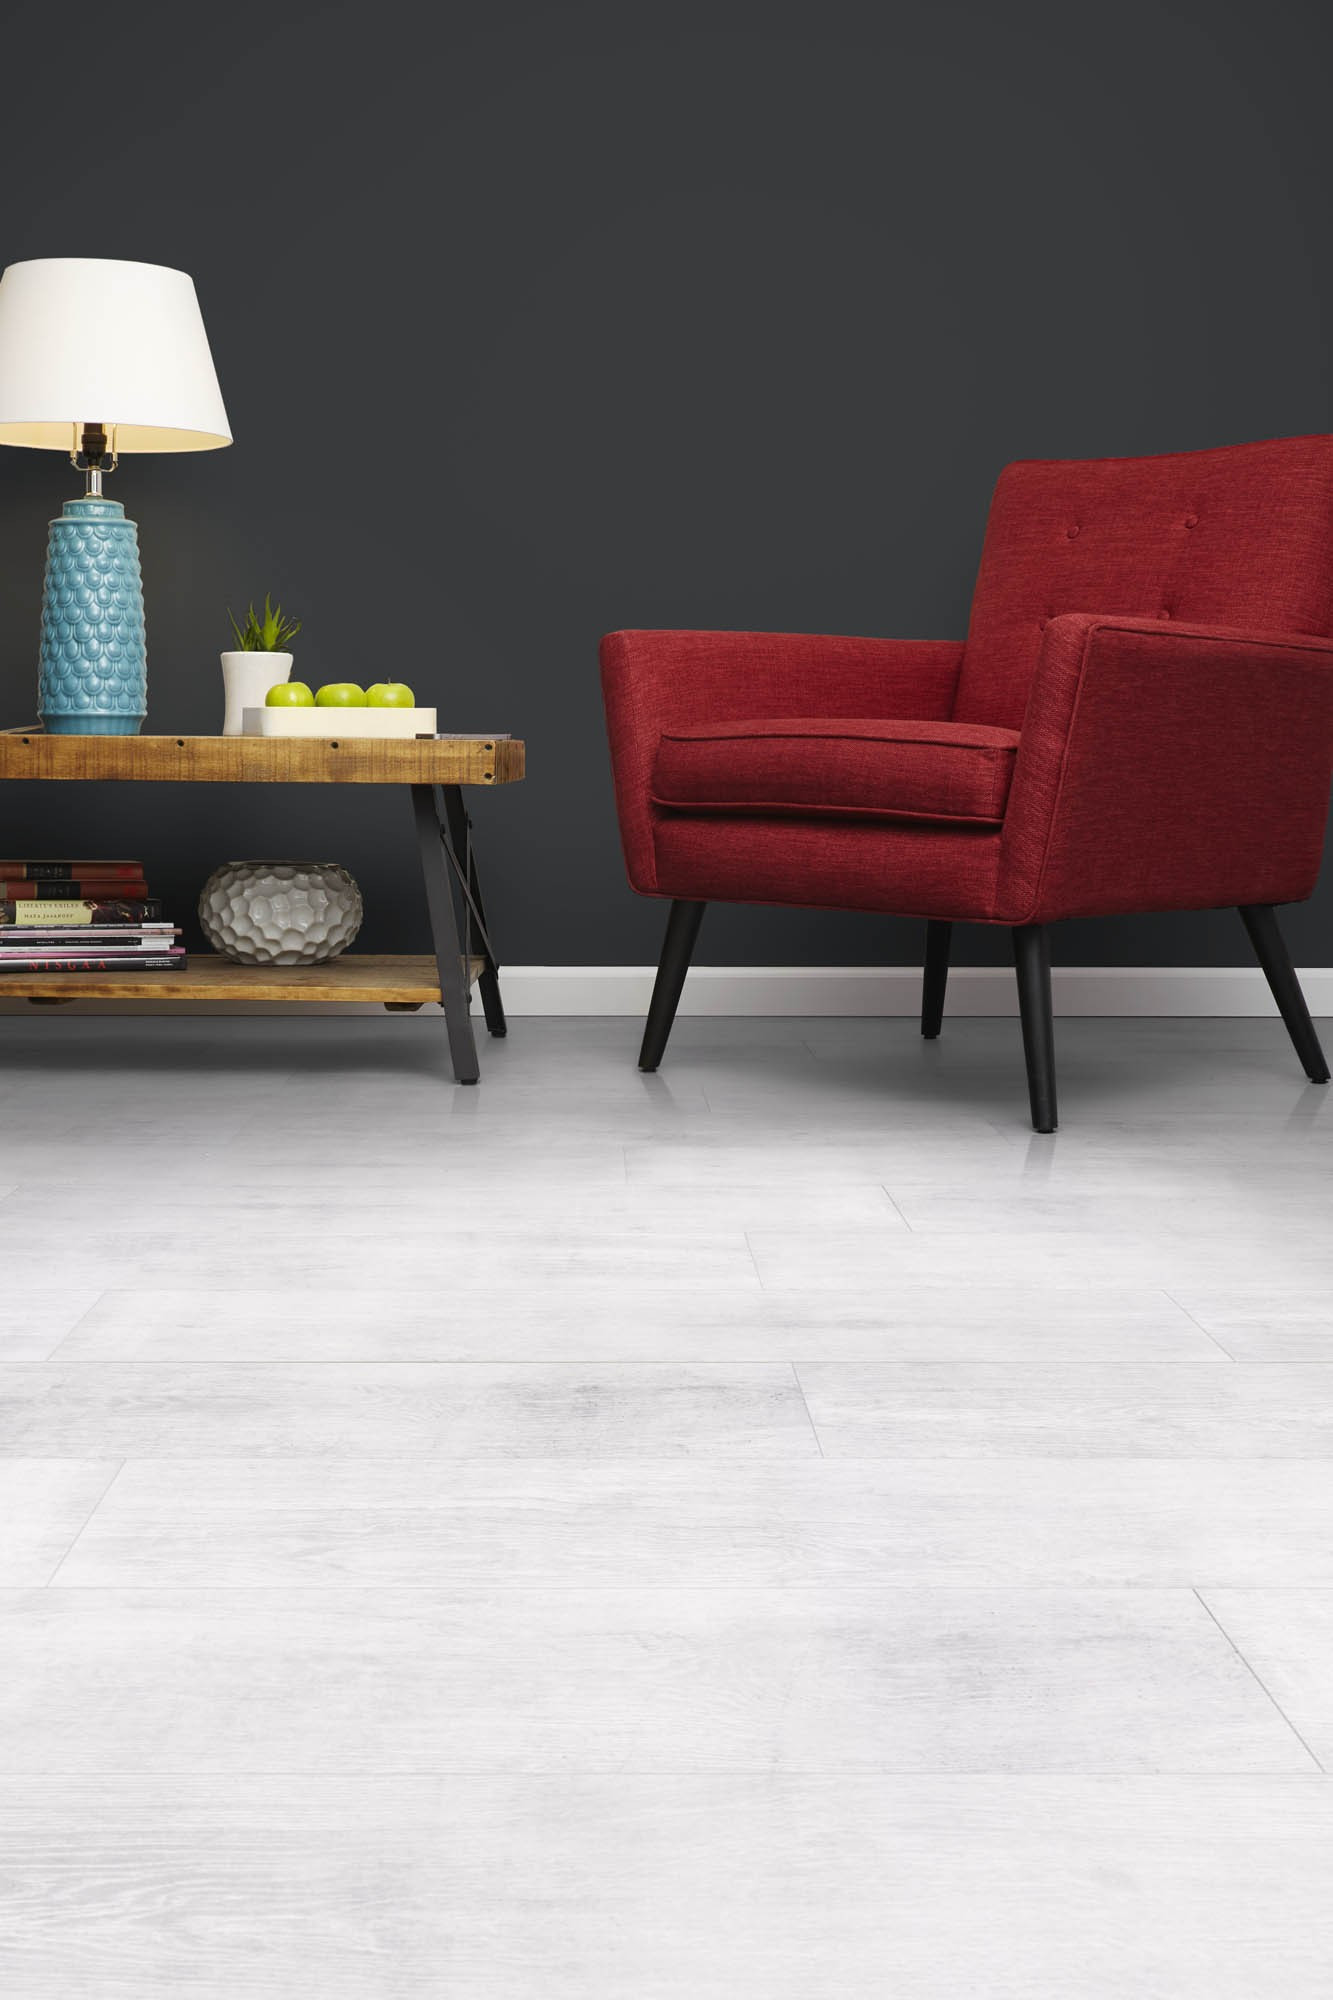 Luxury Vinyl Hardwood Flooring Of Discontinued Shaw area Rugs Beautiful sono Luxury Vinyl Plank Vanity Intended for Discontinued Shaw area Rugs Beautiful sono Luxury Vinyl Plank Vanity White Sfison 3 61